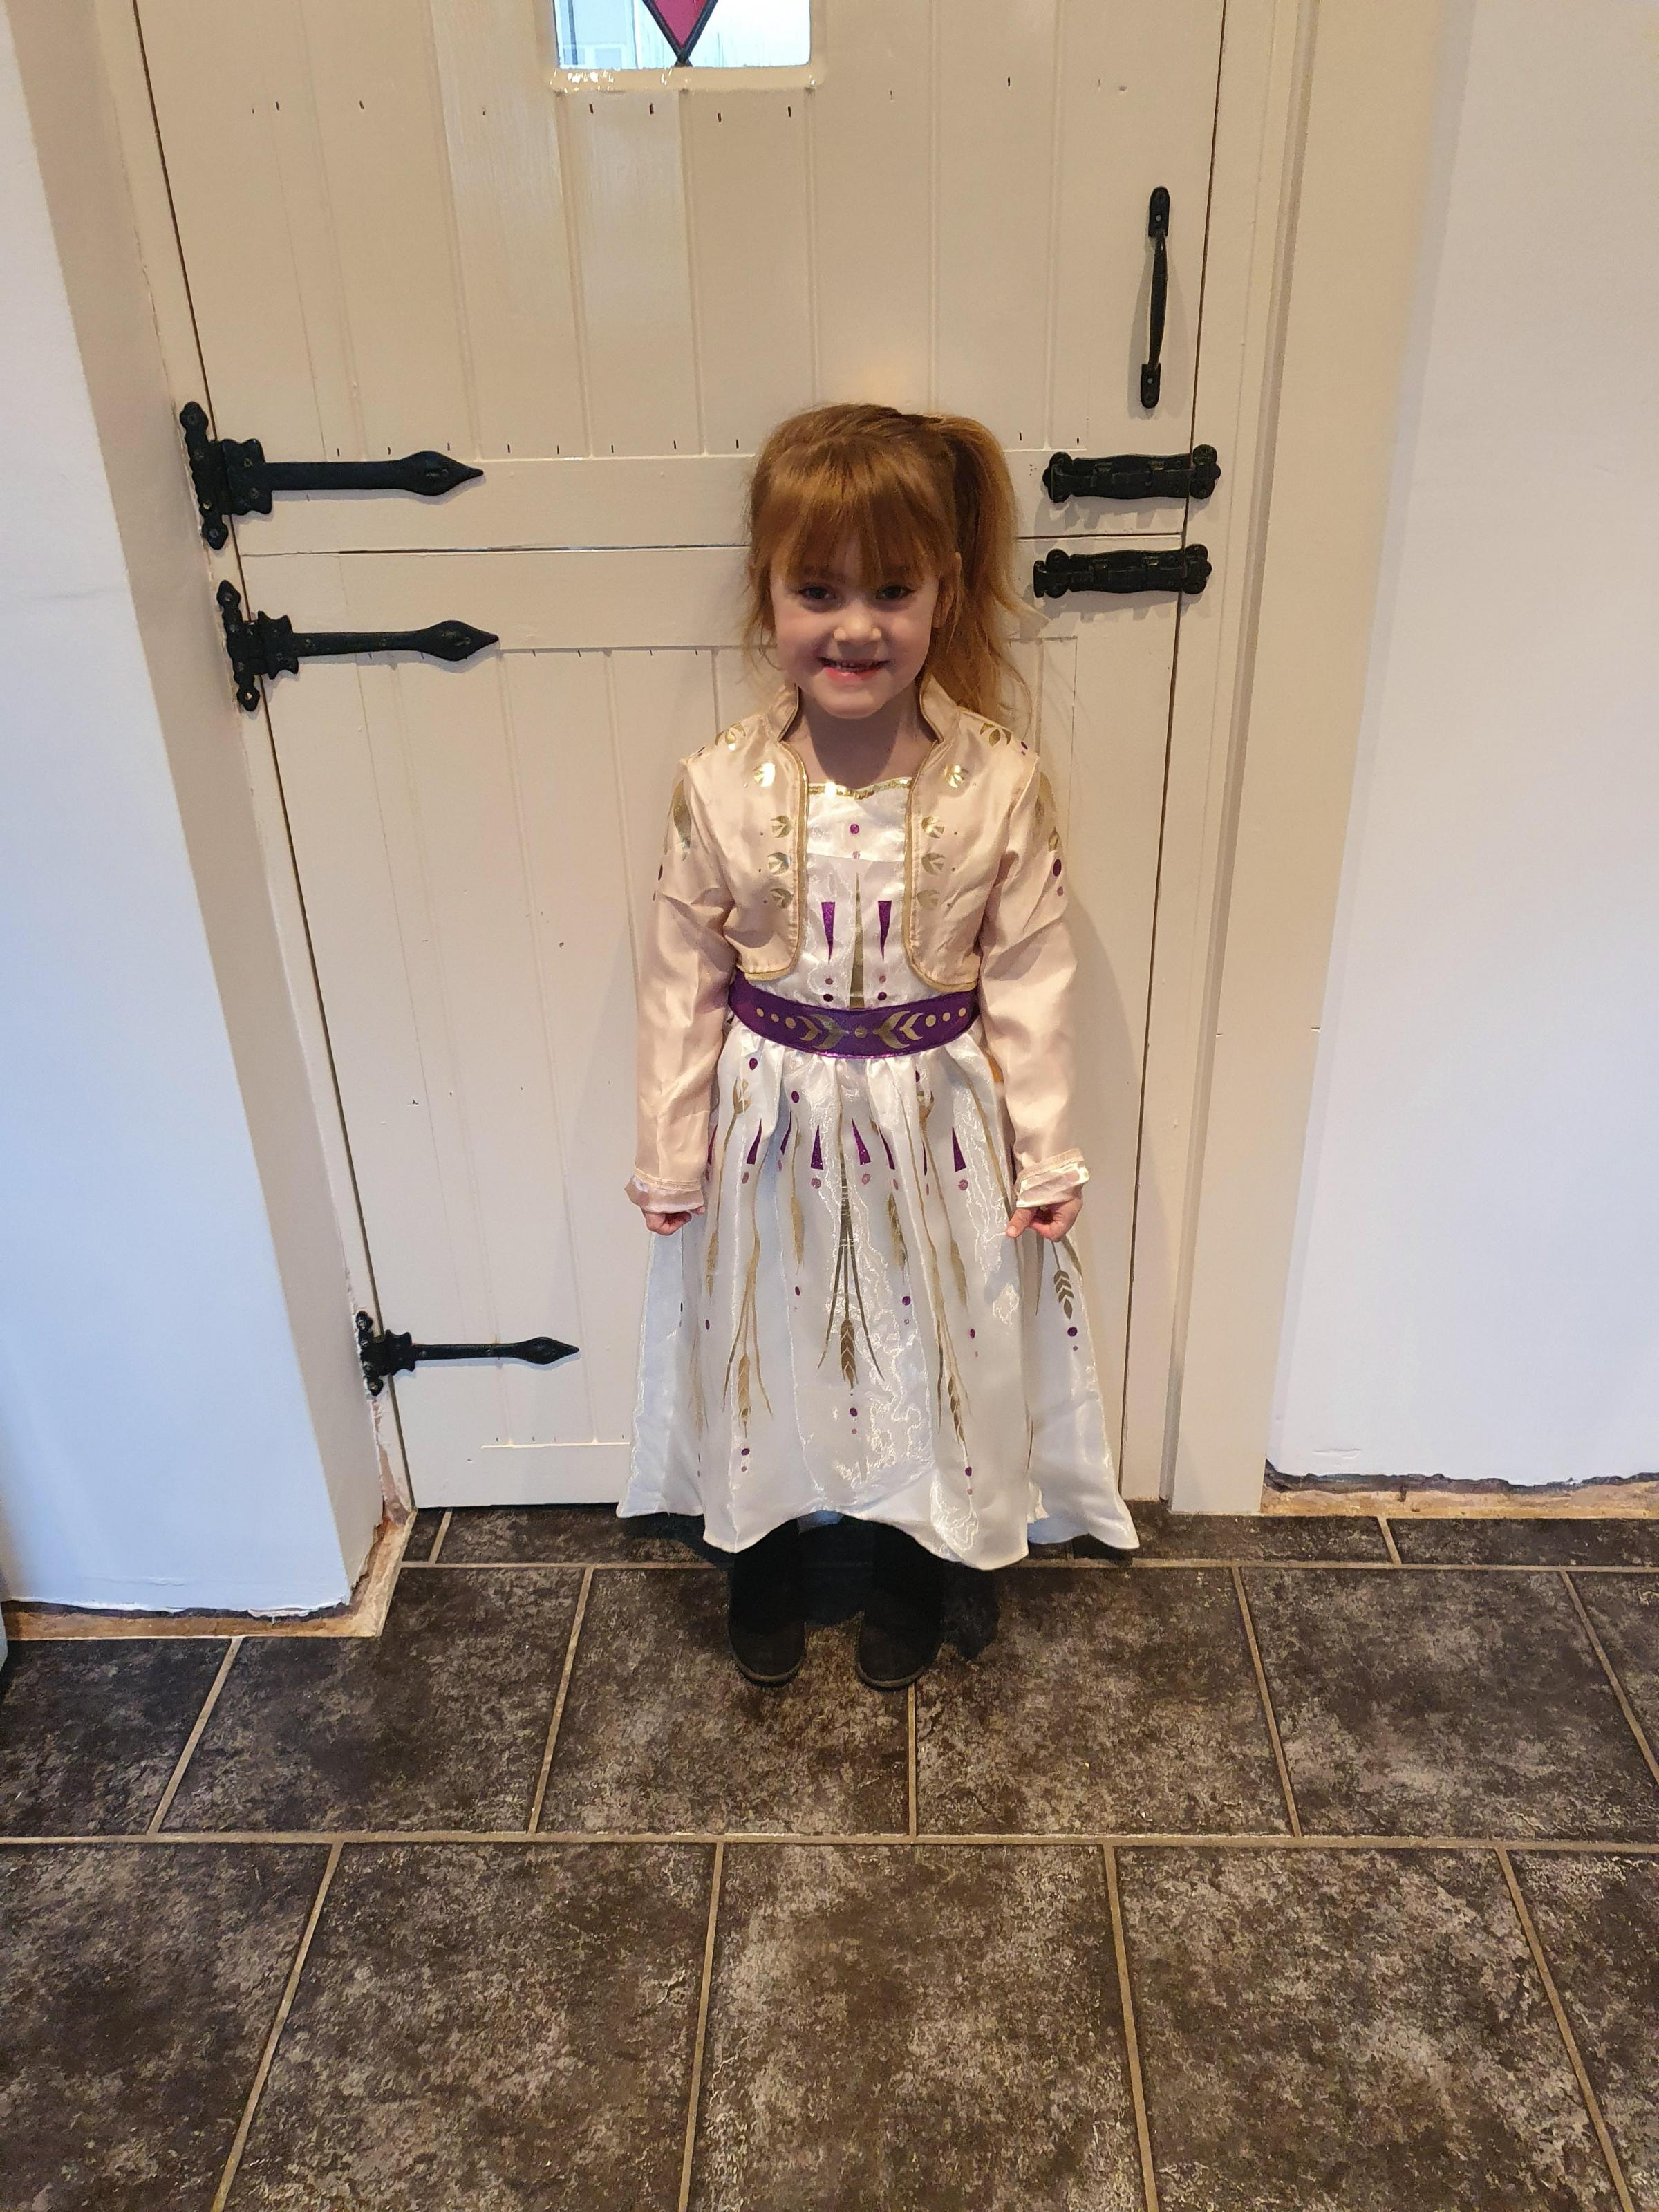 Droitwich Advertiser: This Is annaya Upton age 5 dressed up as anna from frozen 2.